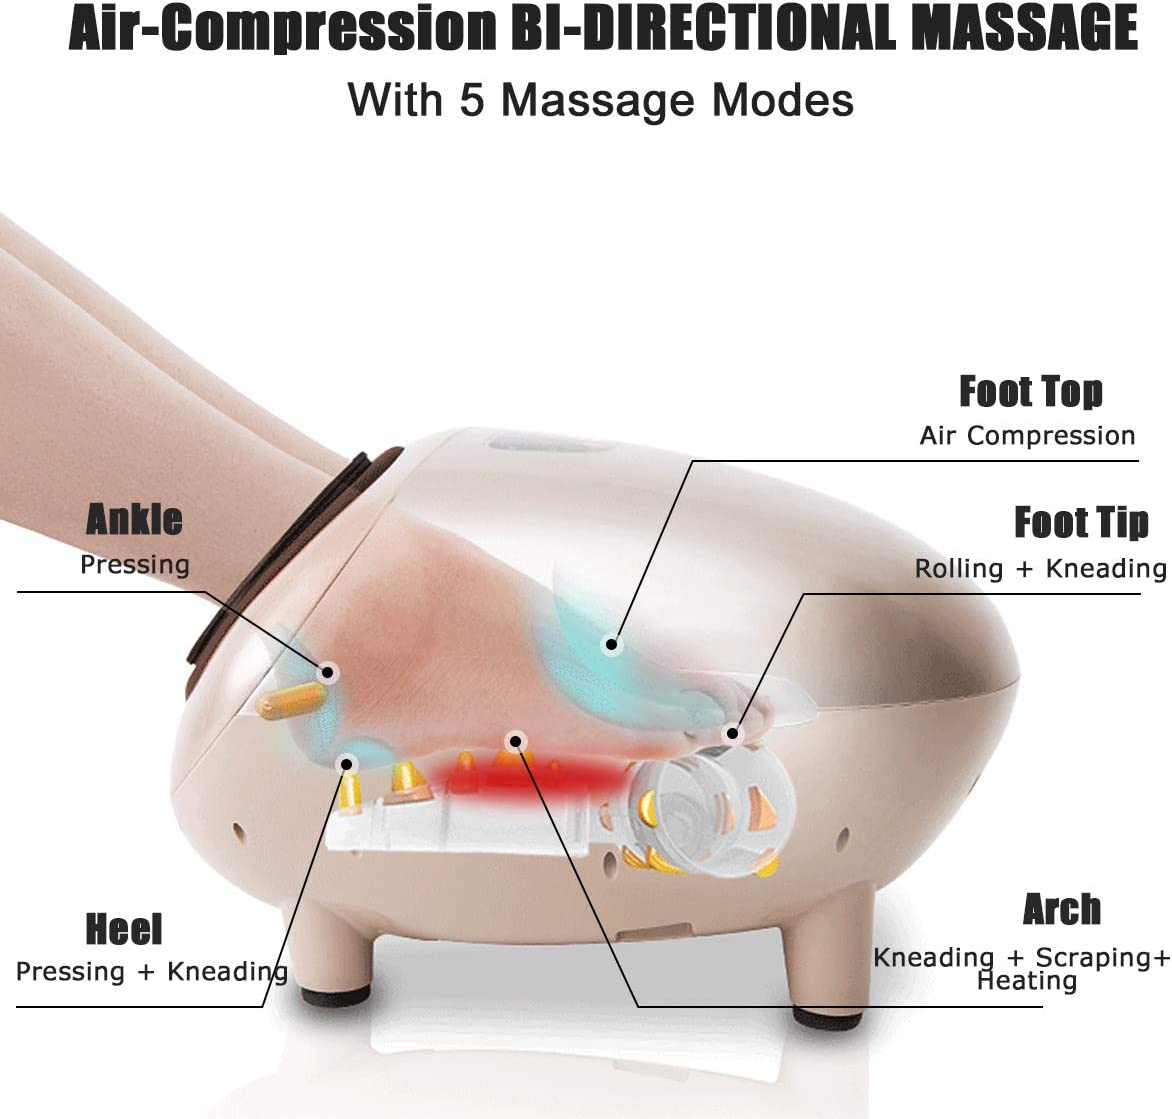 Giantex Foot Massager Big Feet Massage Therapy Kneading Shiatsu Massaging Machine with Heat for Plantar Fasciitis, Fit Foot Size Up to Men 12.5 Women 13.5 Large Foot Massagers Gold